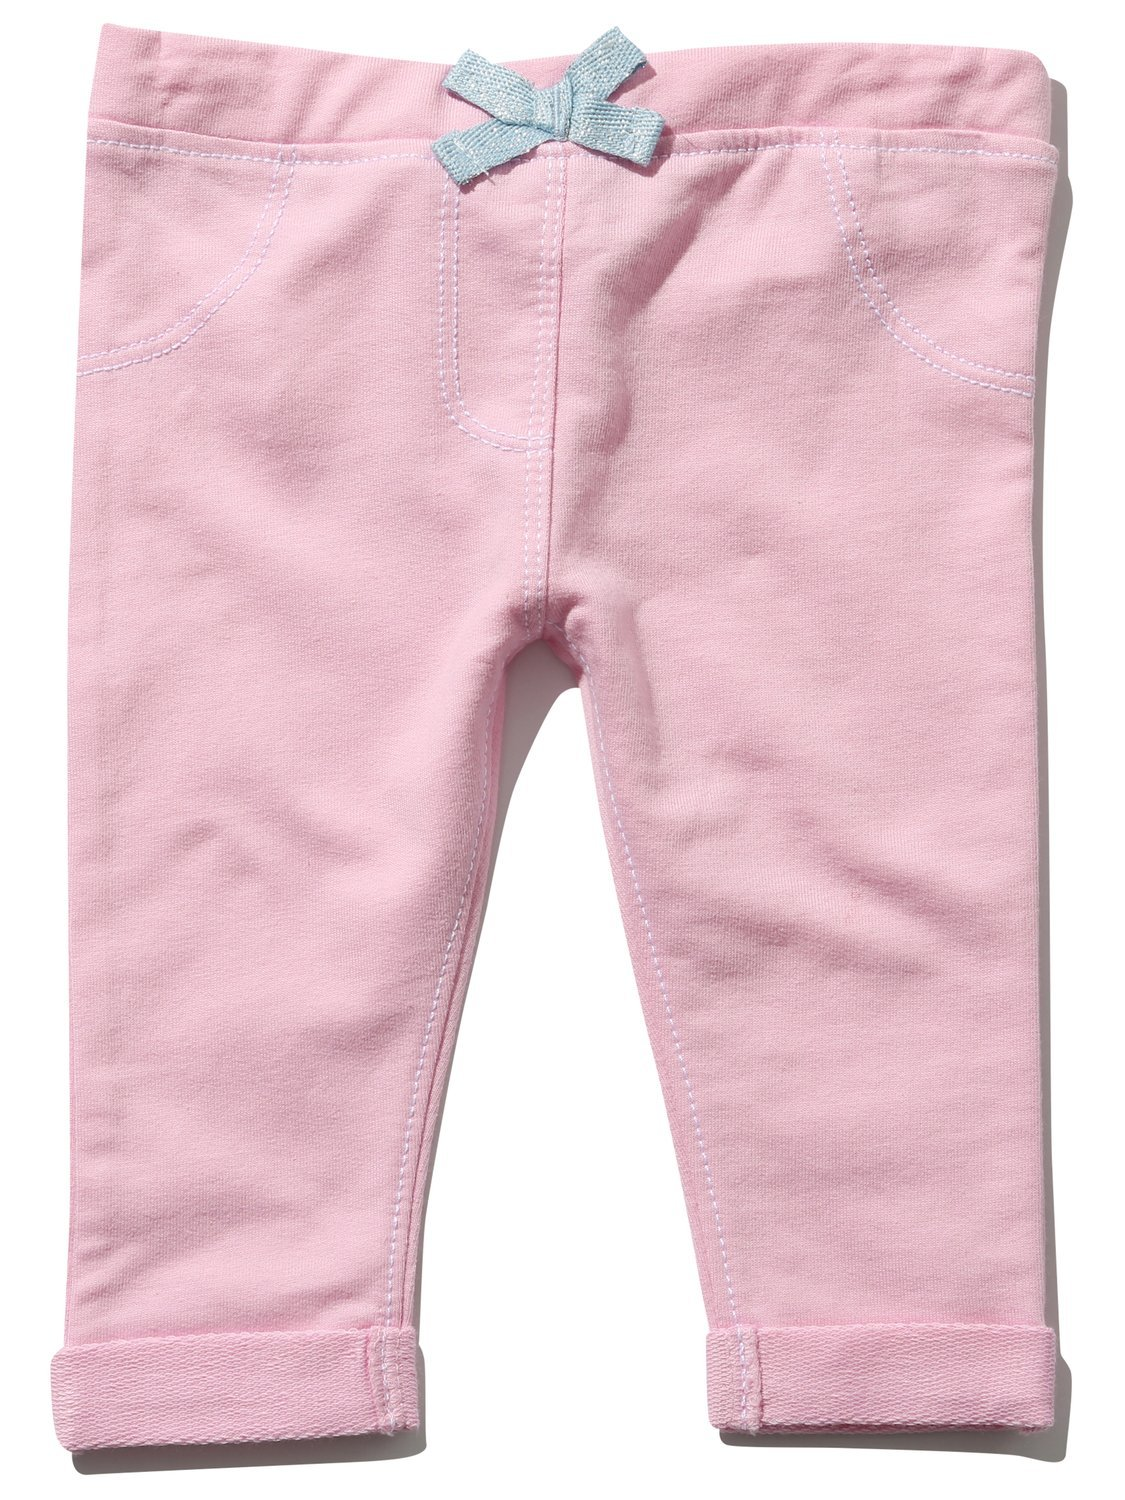 M&Co Baby Girl Plain Pink Elasticated Waist Bow Front Turn Ups Stitch Detail Jeggings